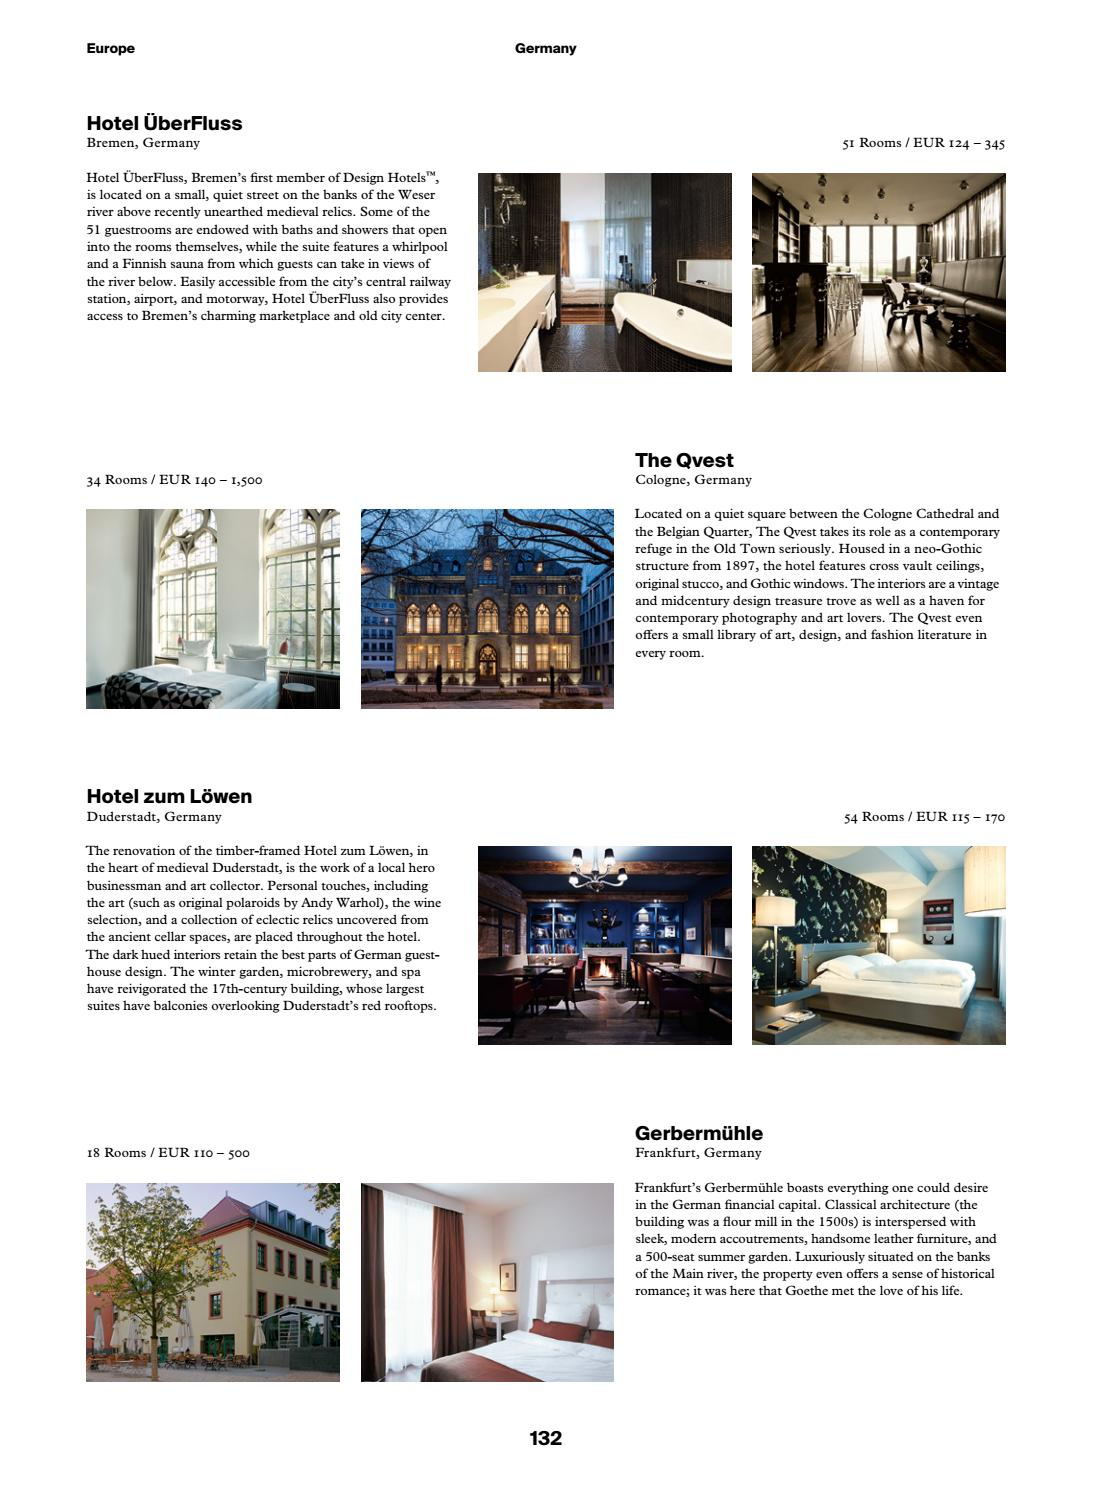 Bremen Hotel überfluss Directions The Magazine By Design Hotels No 13 Issue 2017 By